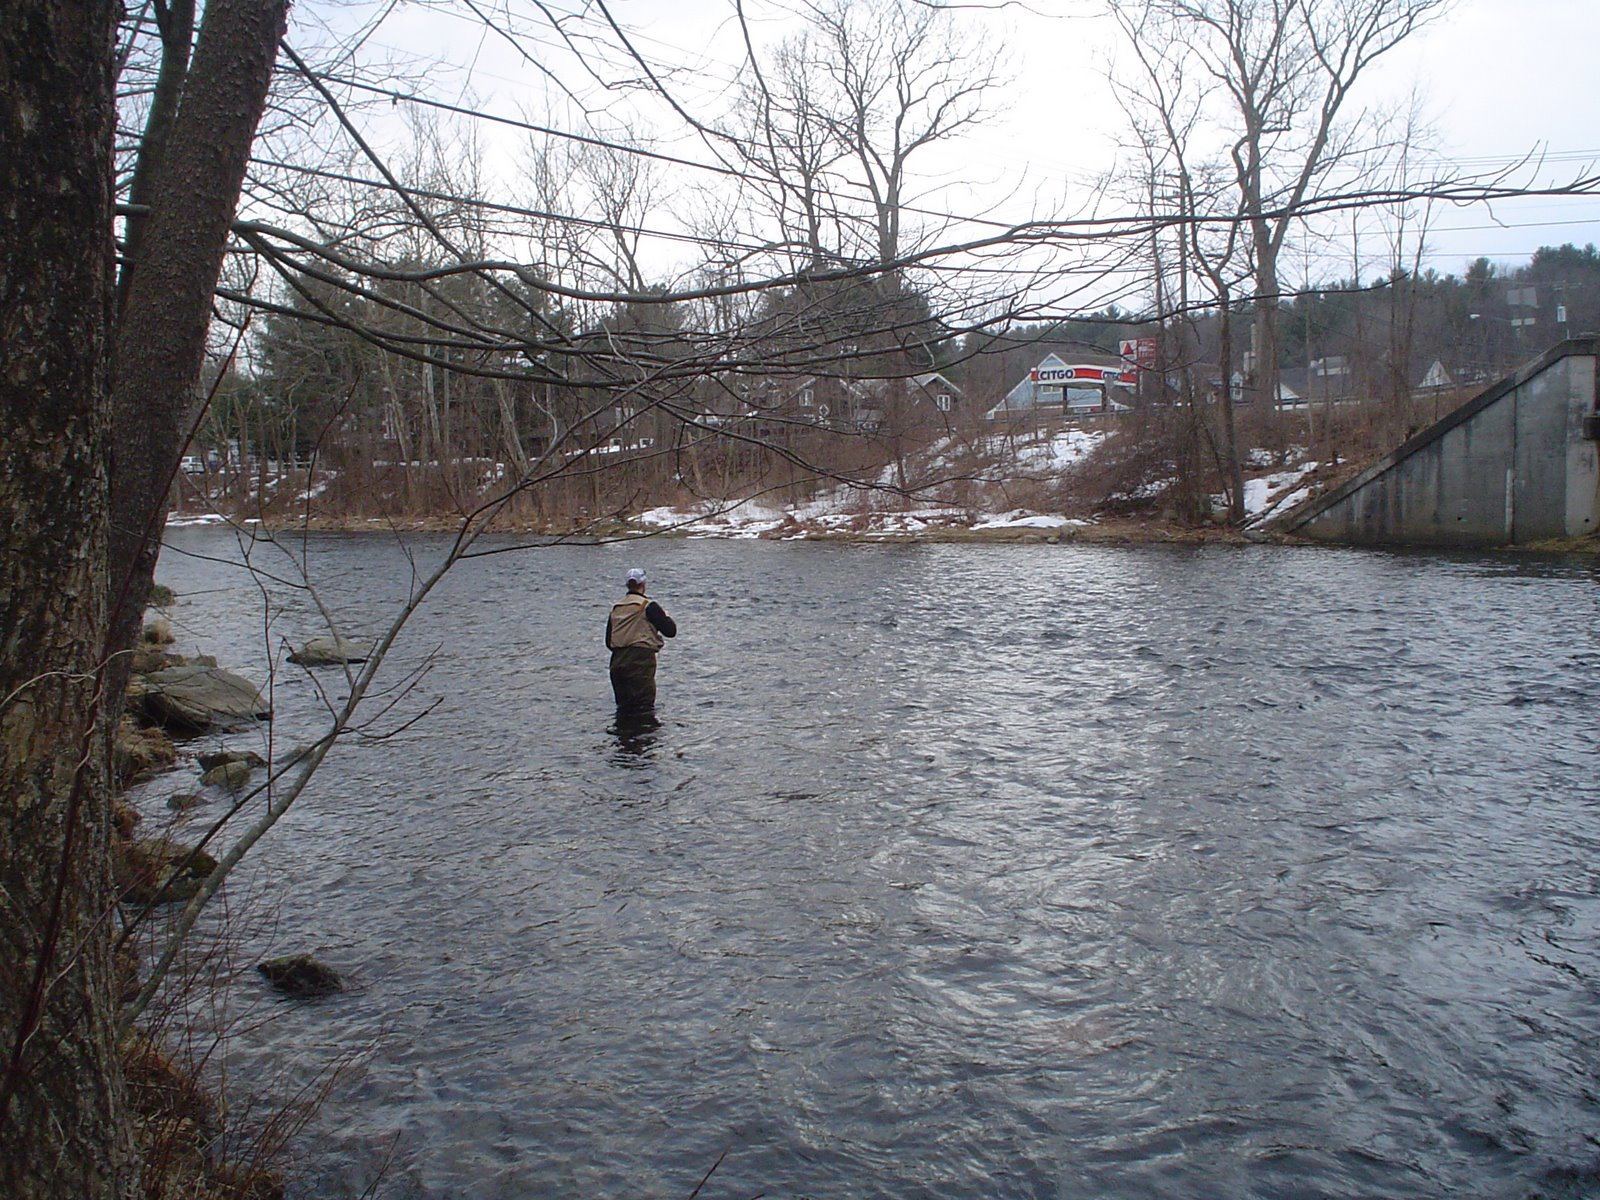 Millers swift ware and eb fly fishing forum welcome to for Farmington river fishing